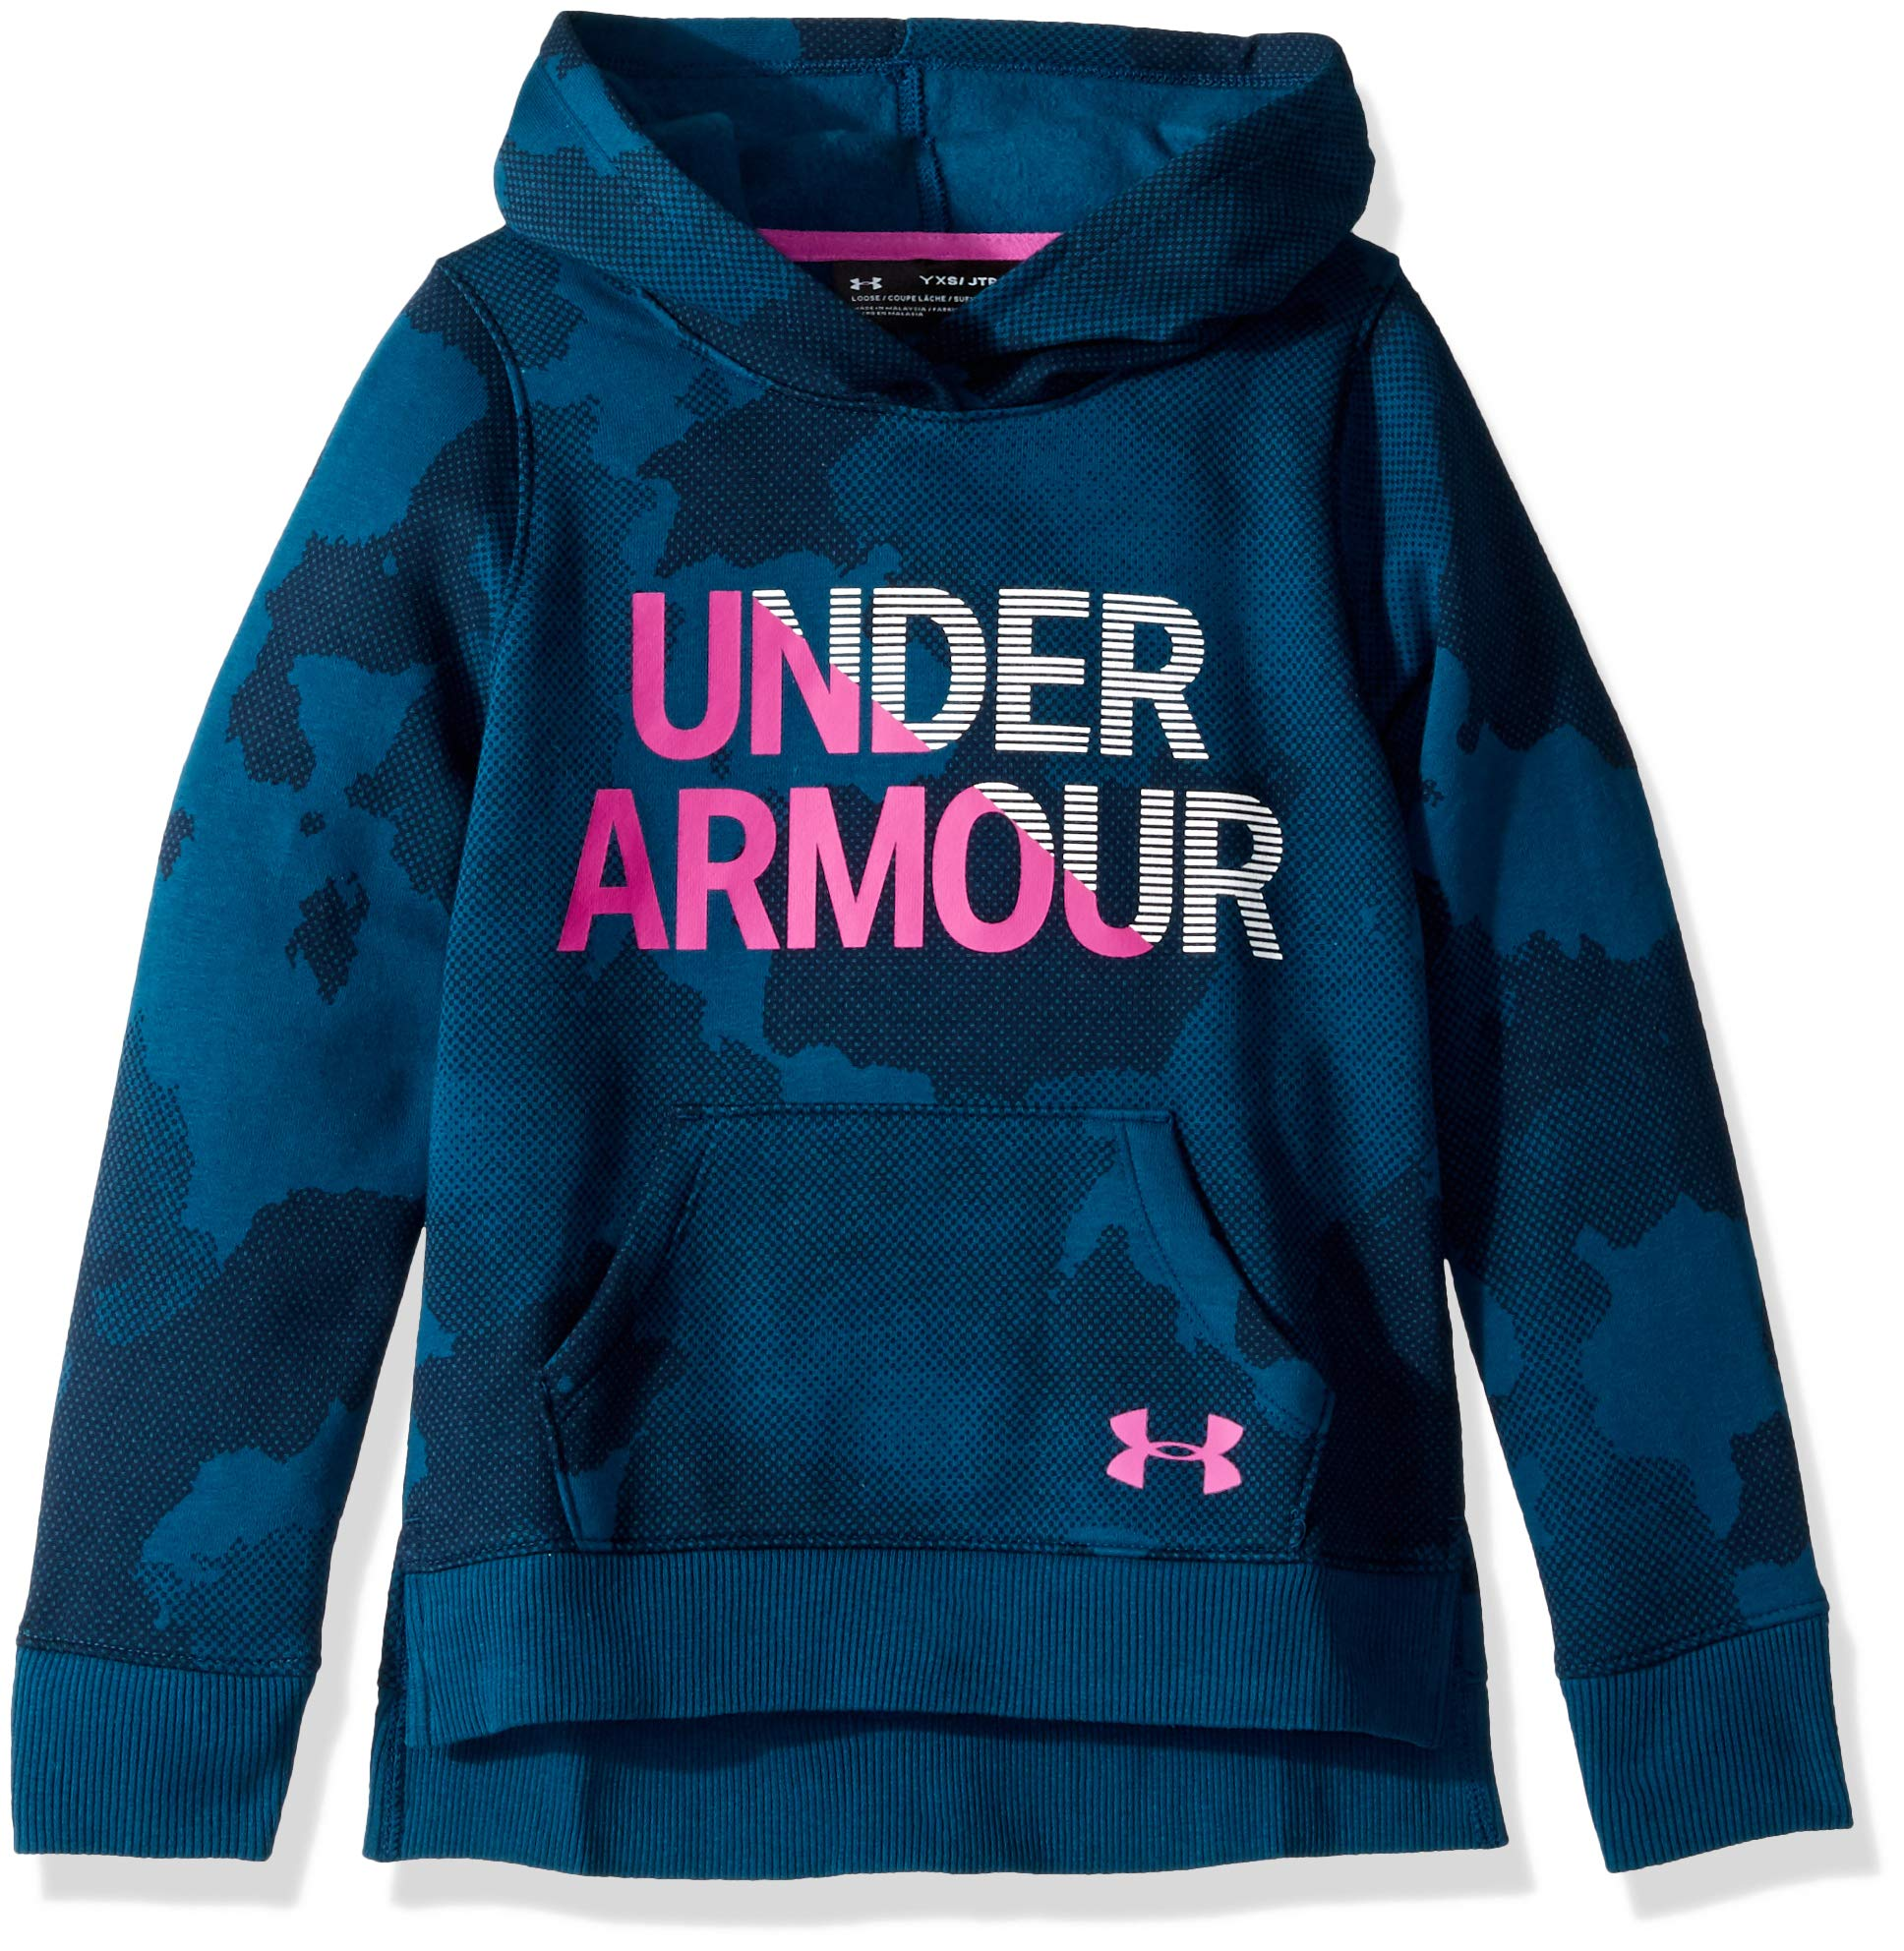 Under Armour Girls Rival Hoodie, Techno Teal (490)/Fluo Fuchsia, Medium by Under Armour